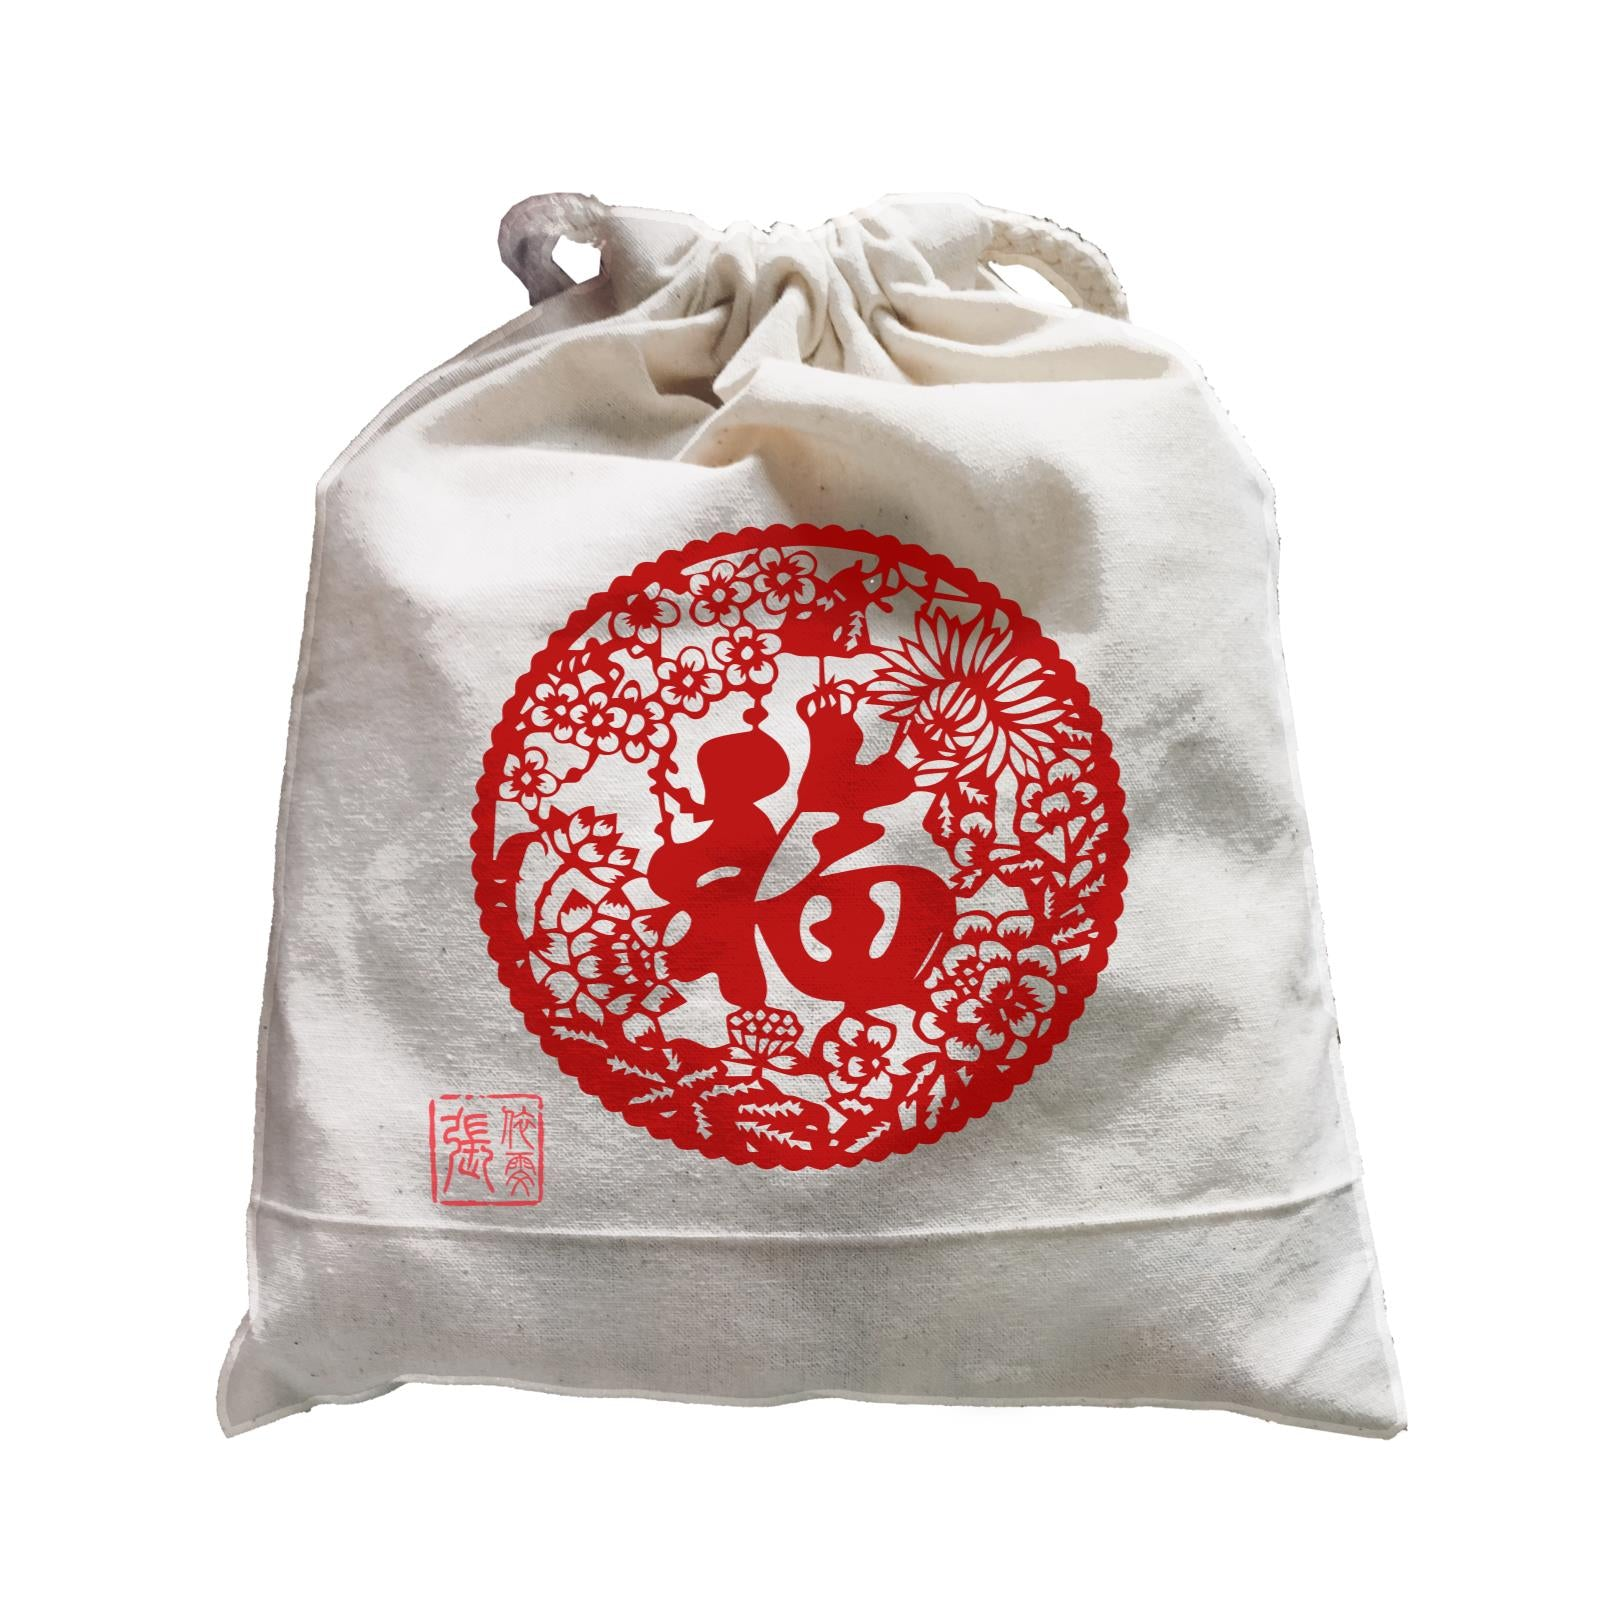 Chinese New Year Prosperity Traditional Ang Pao Bag Satchel  Personalizable Designs